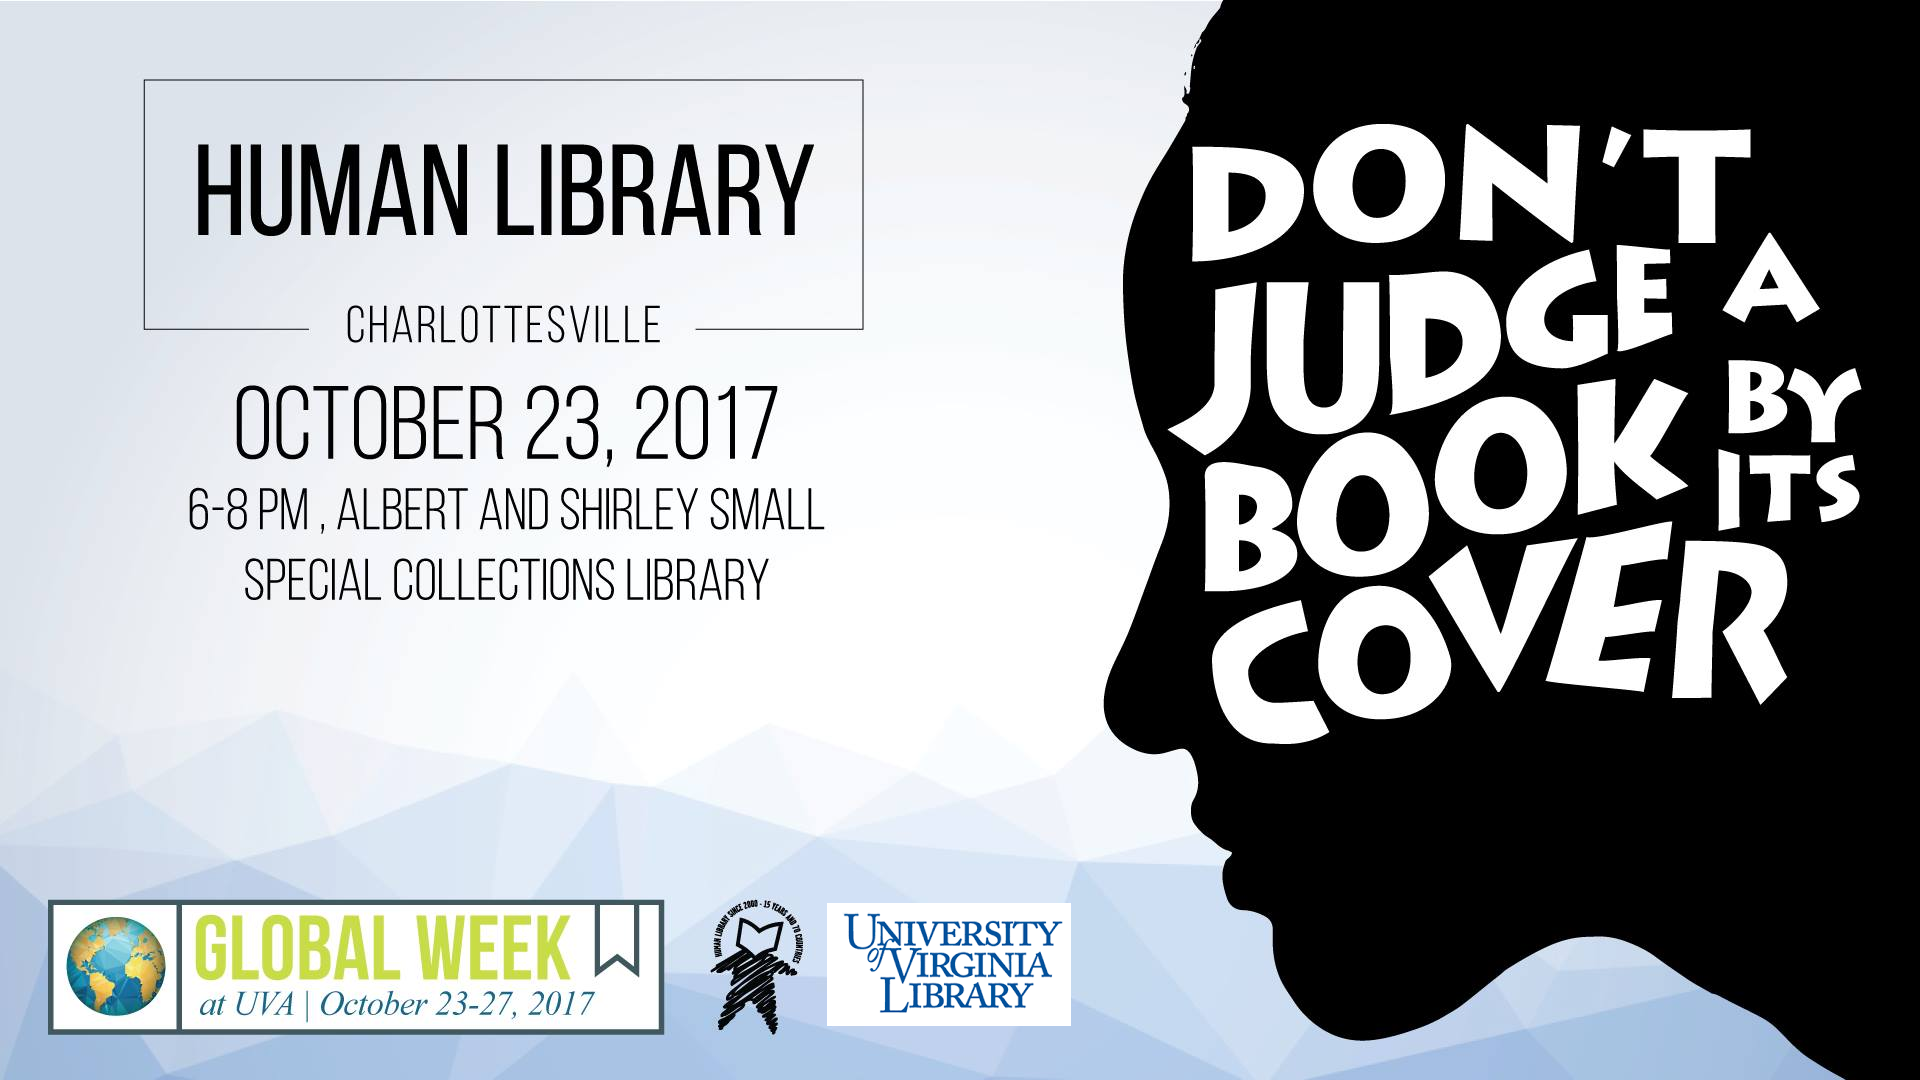 Human Library, Charlottesville. A Global Week Activity.